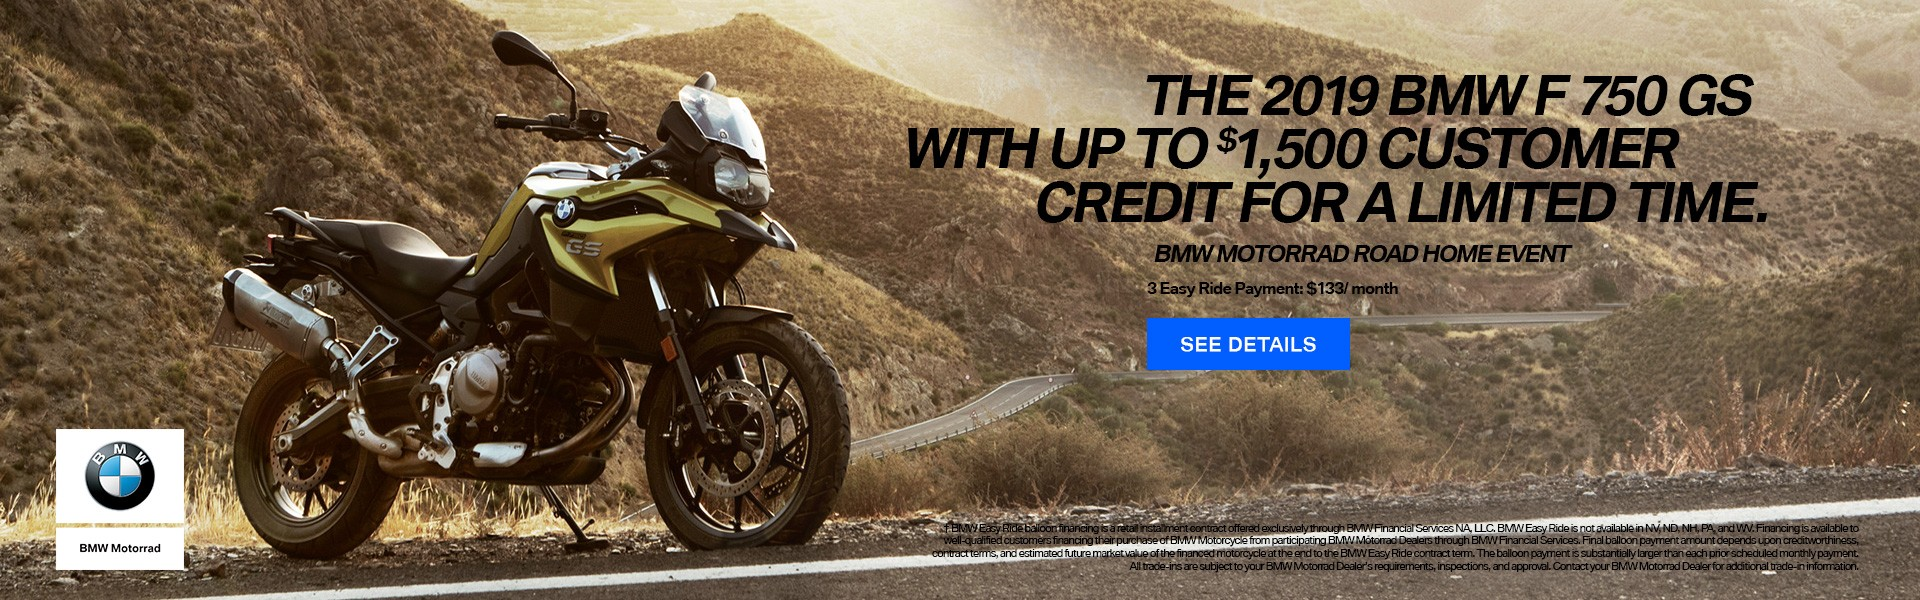 The 2019 BMW F 750 GS with up to $1500 Customer Credit for a limited time.